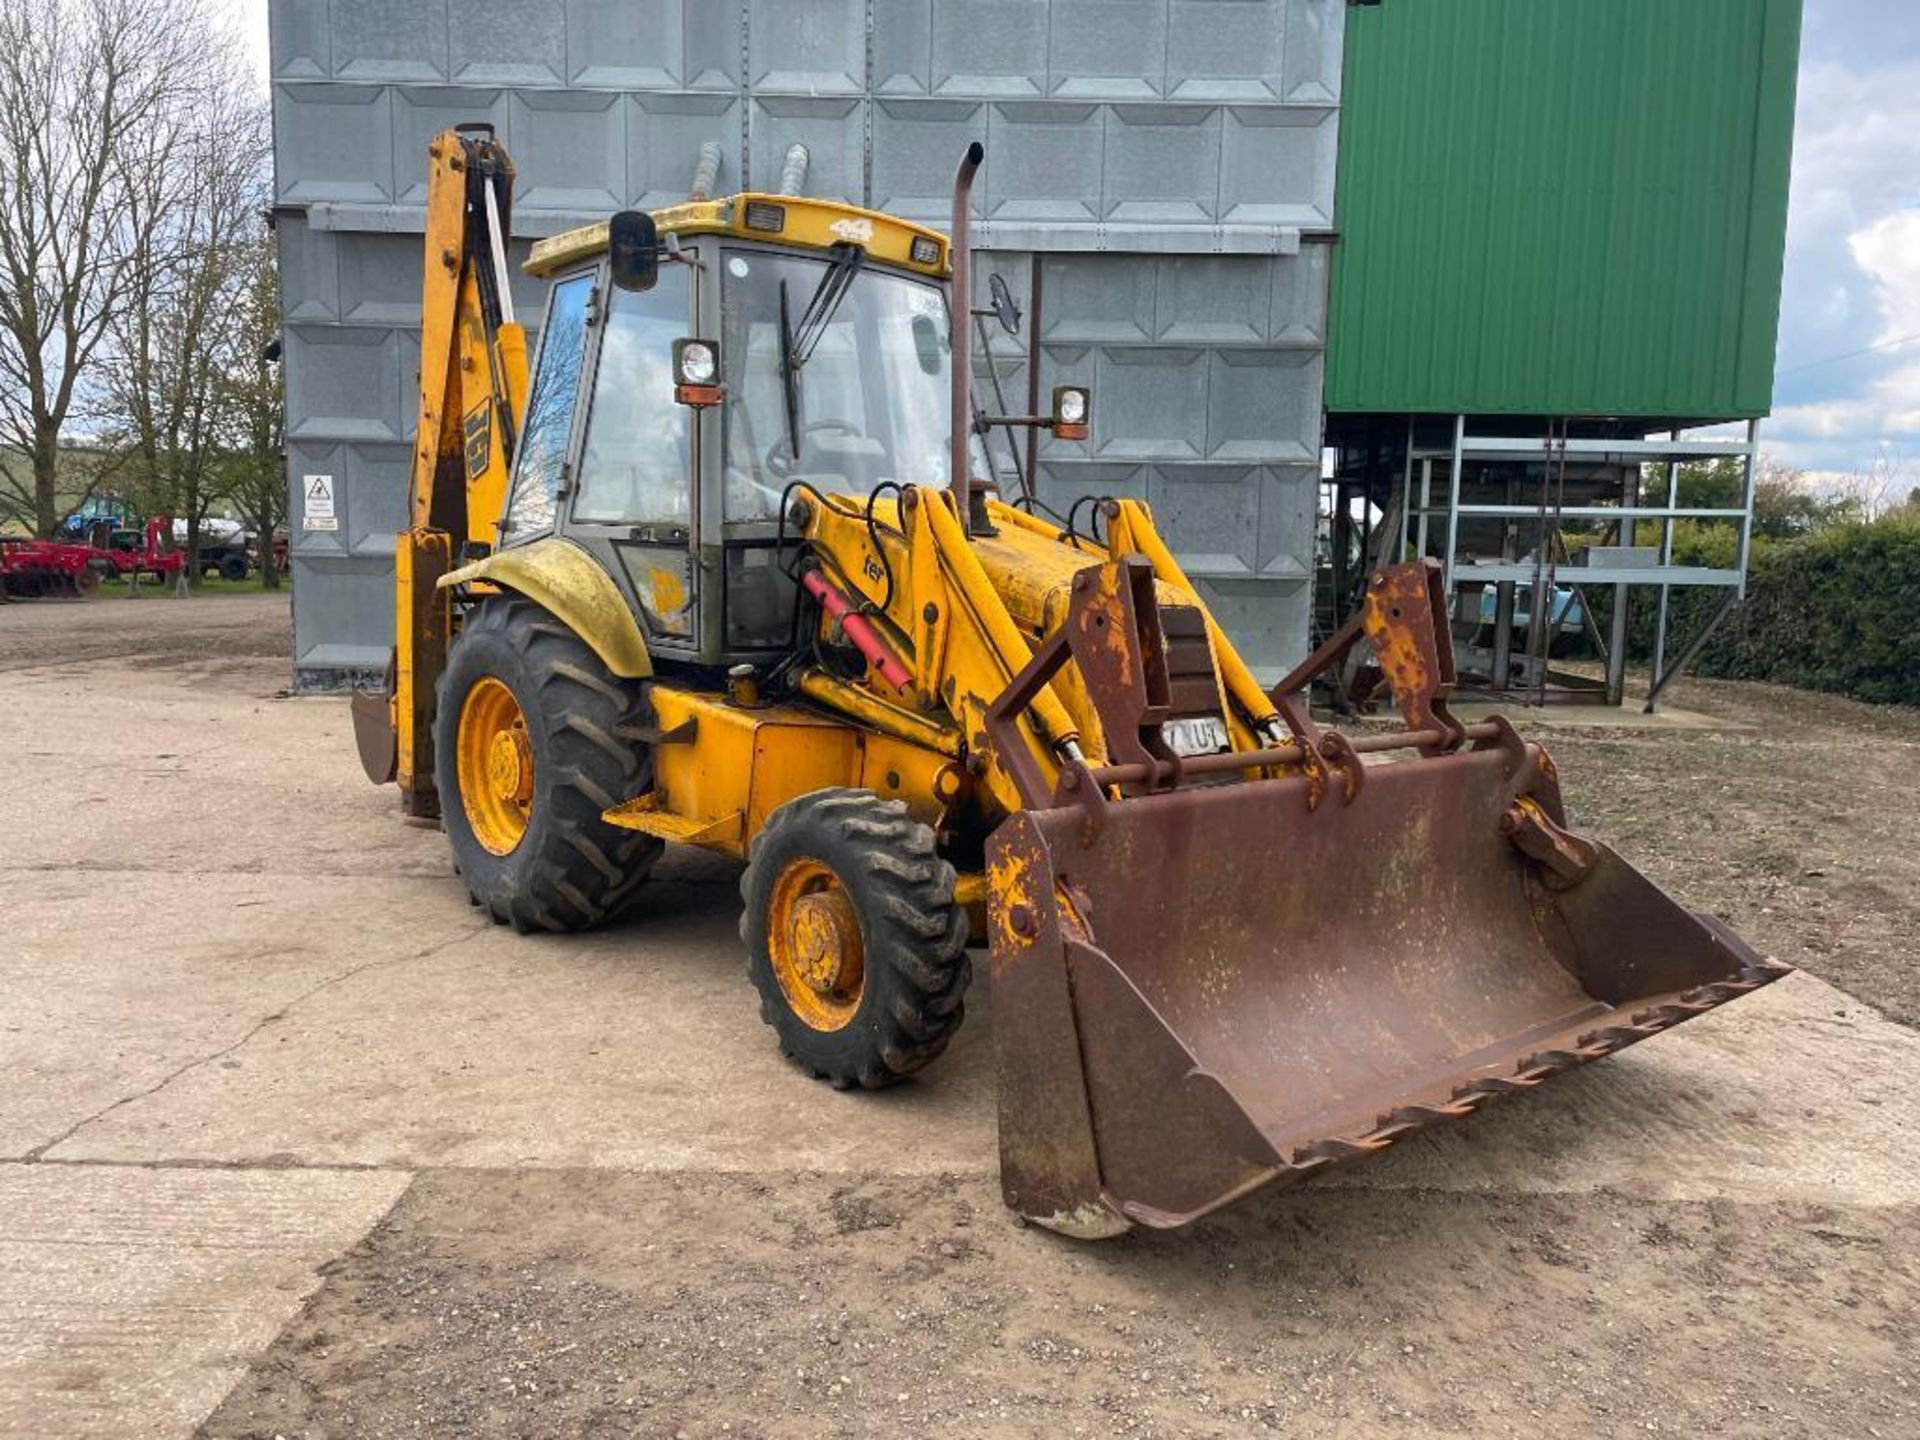 1993 JCB 3CX Sitemaster 4wd back hoe loader with 3 in 1 bucket on 10.5/80-18 front and 18.4-26 rear - Image 9 of 14